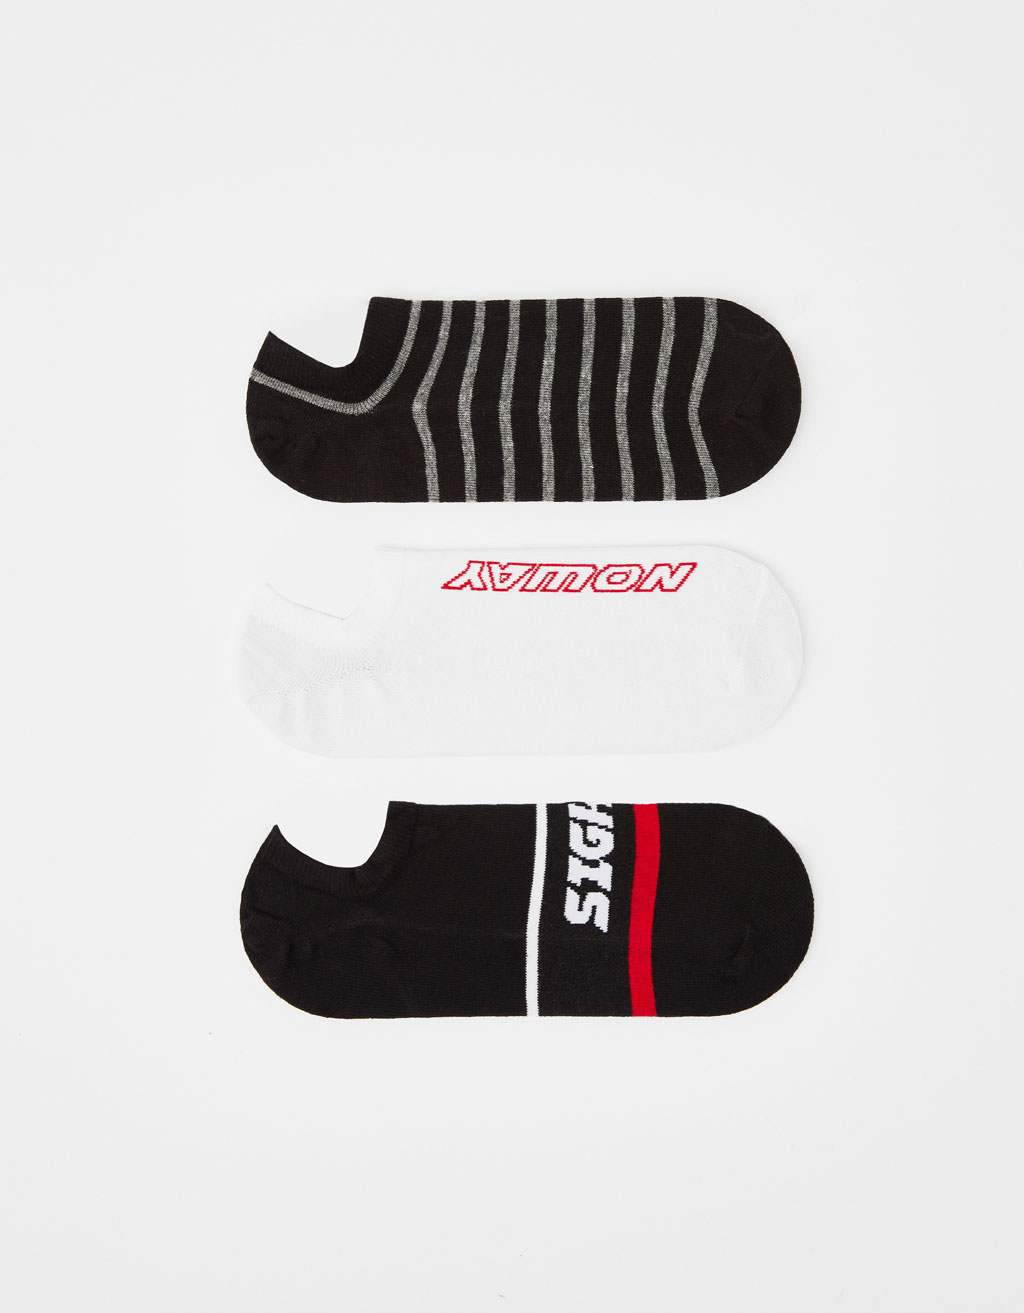 Set of striped and slogan-printed socks